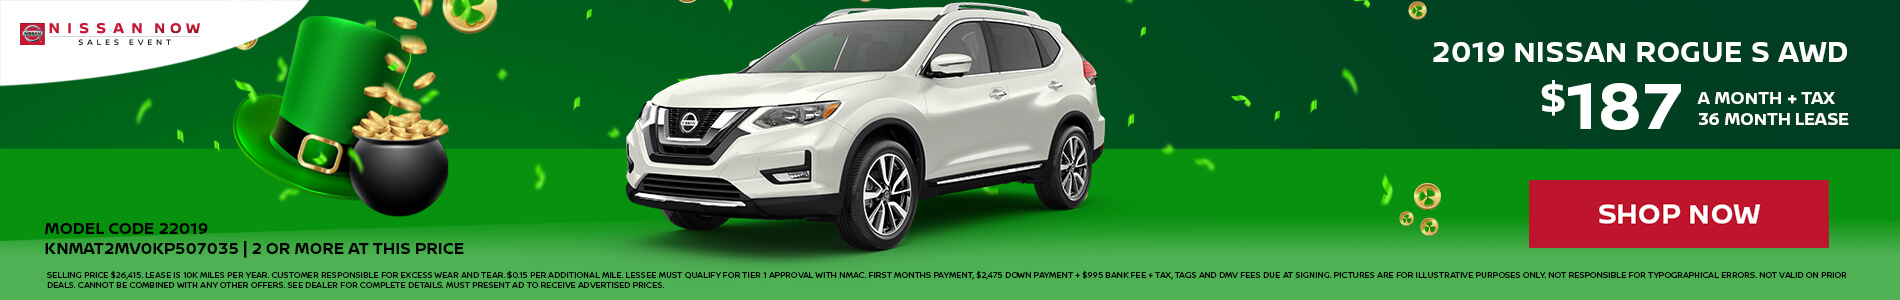 Nissan Rogue $187 Lease